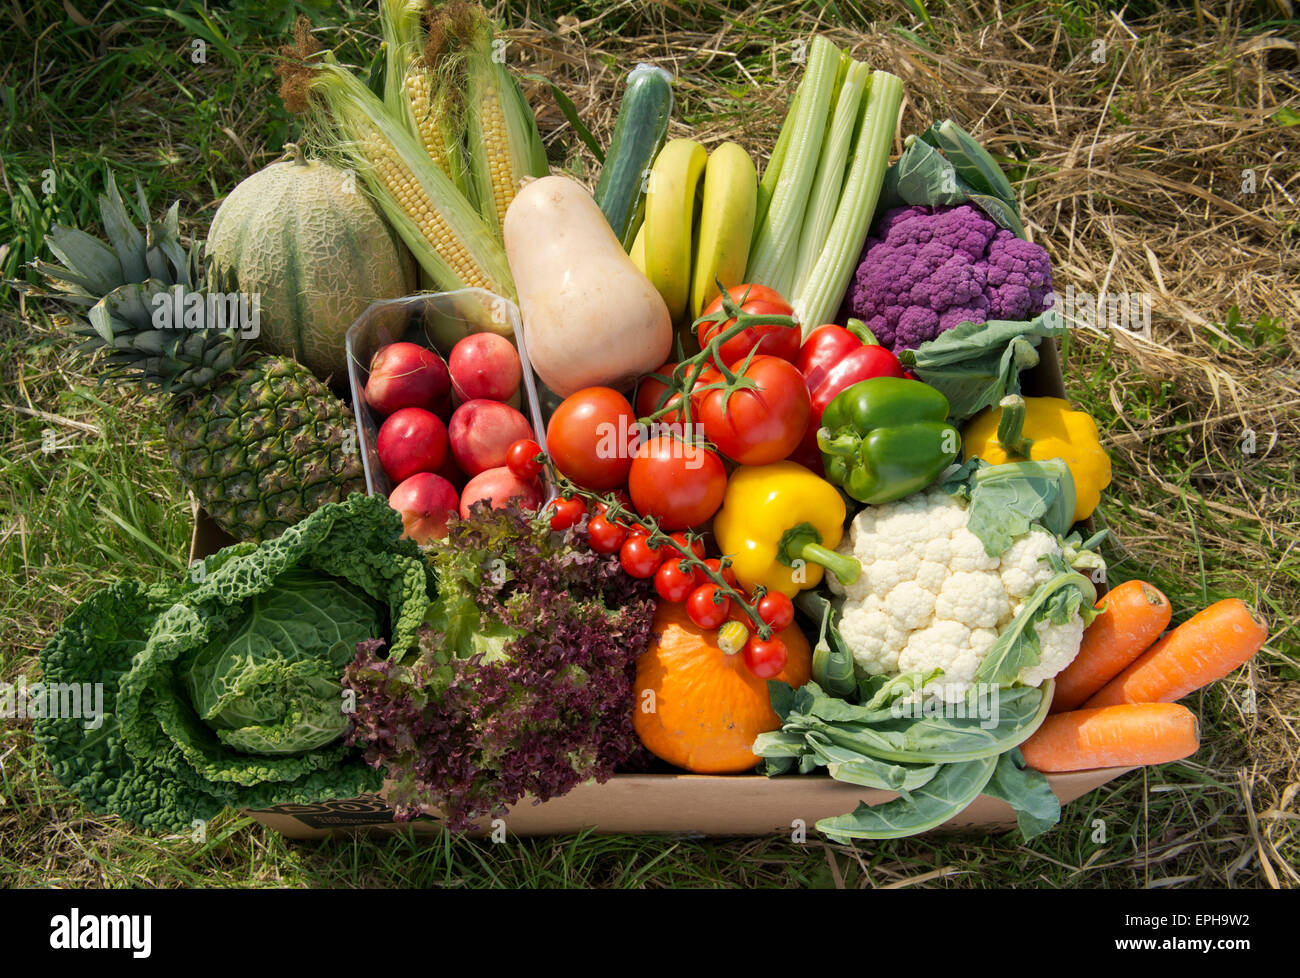 A seasonal veg box including fruit and vegetables ready to